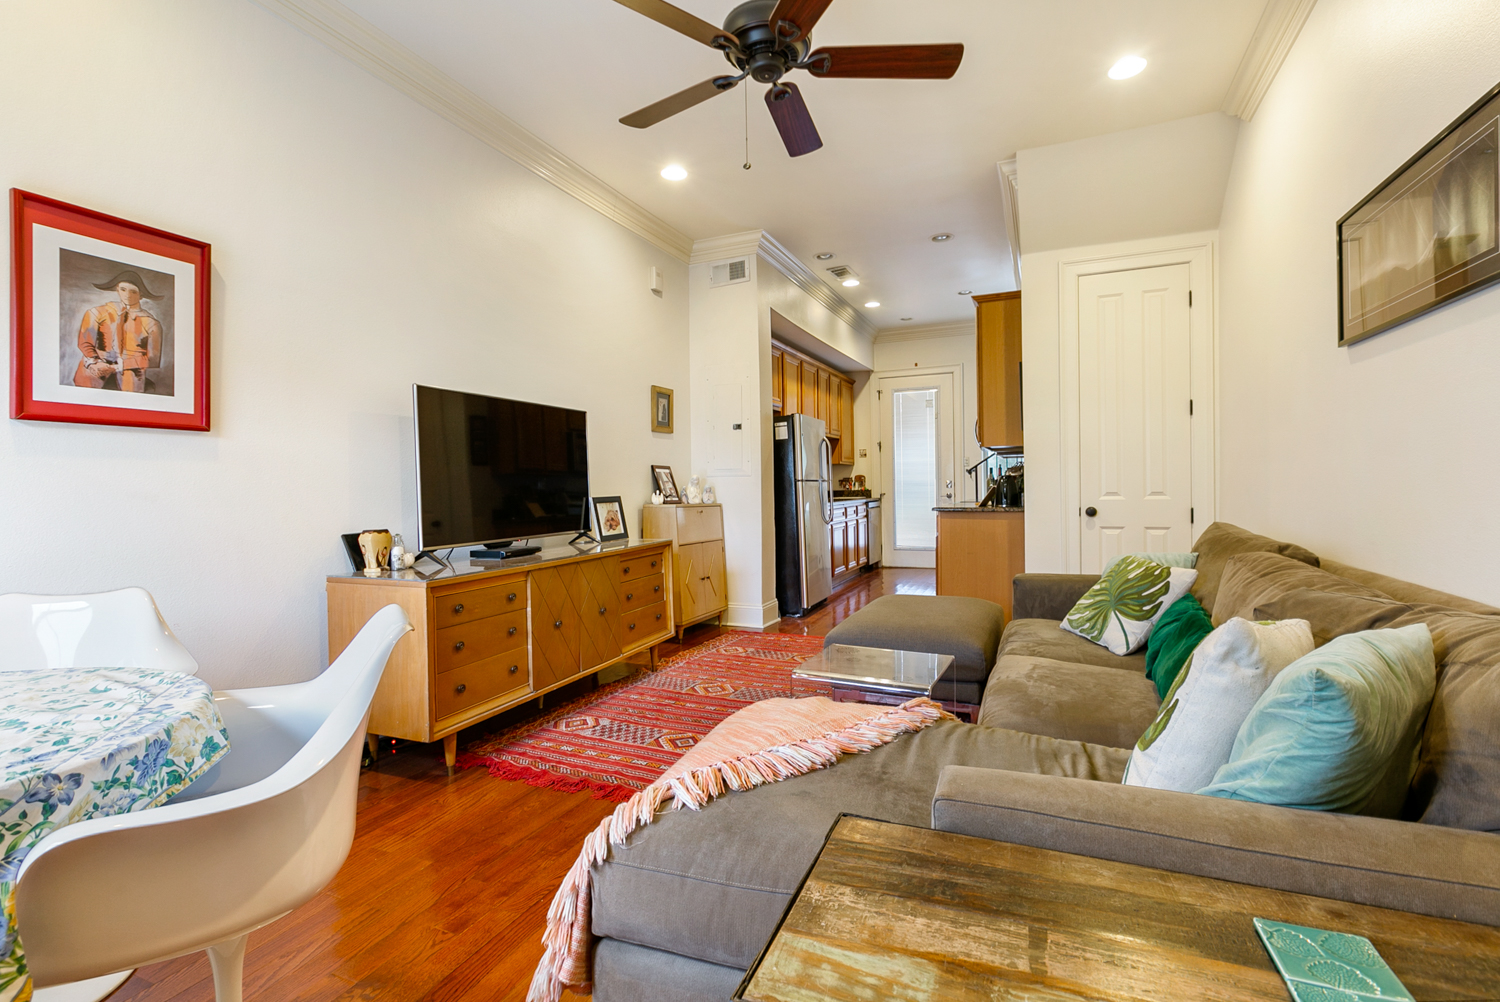 Uptown, Condo, 2 beds, 1.5 baths, $2500 per month New Orleans Rental - devie image_1